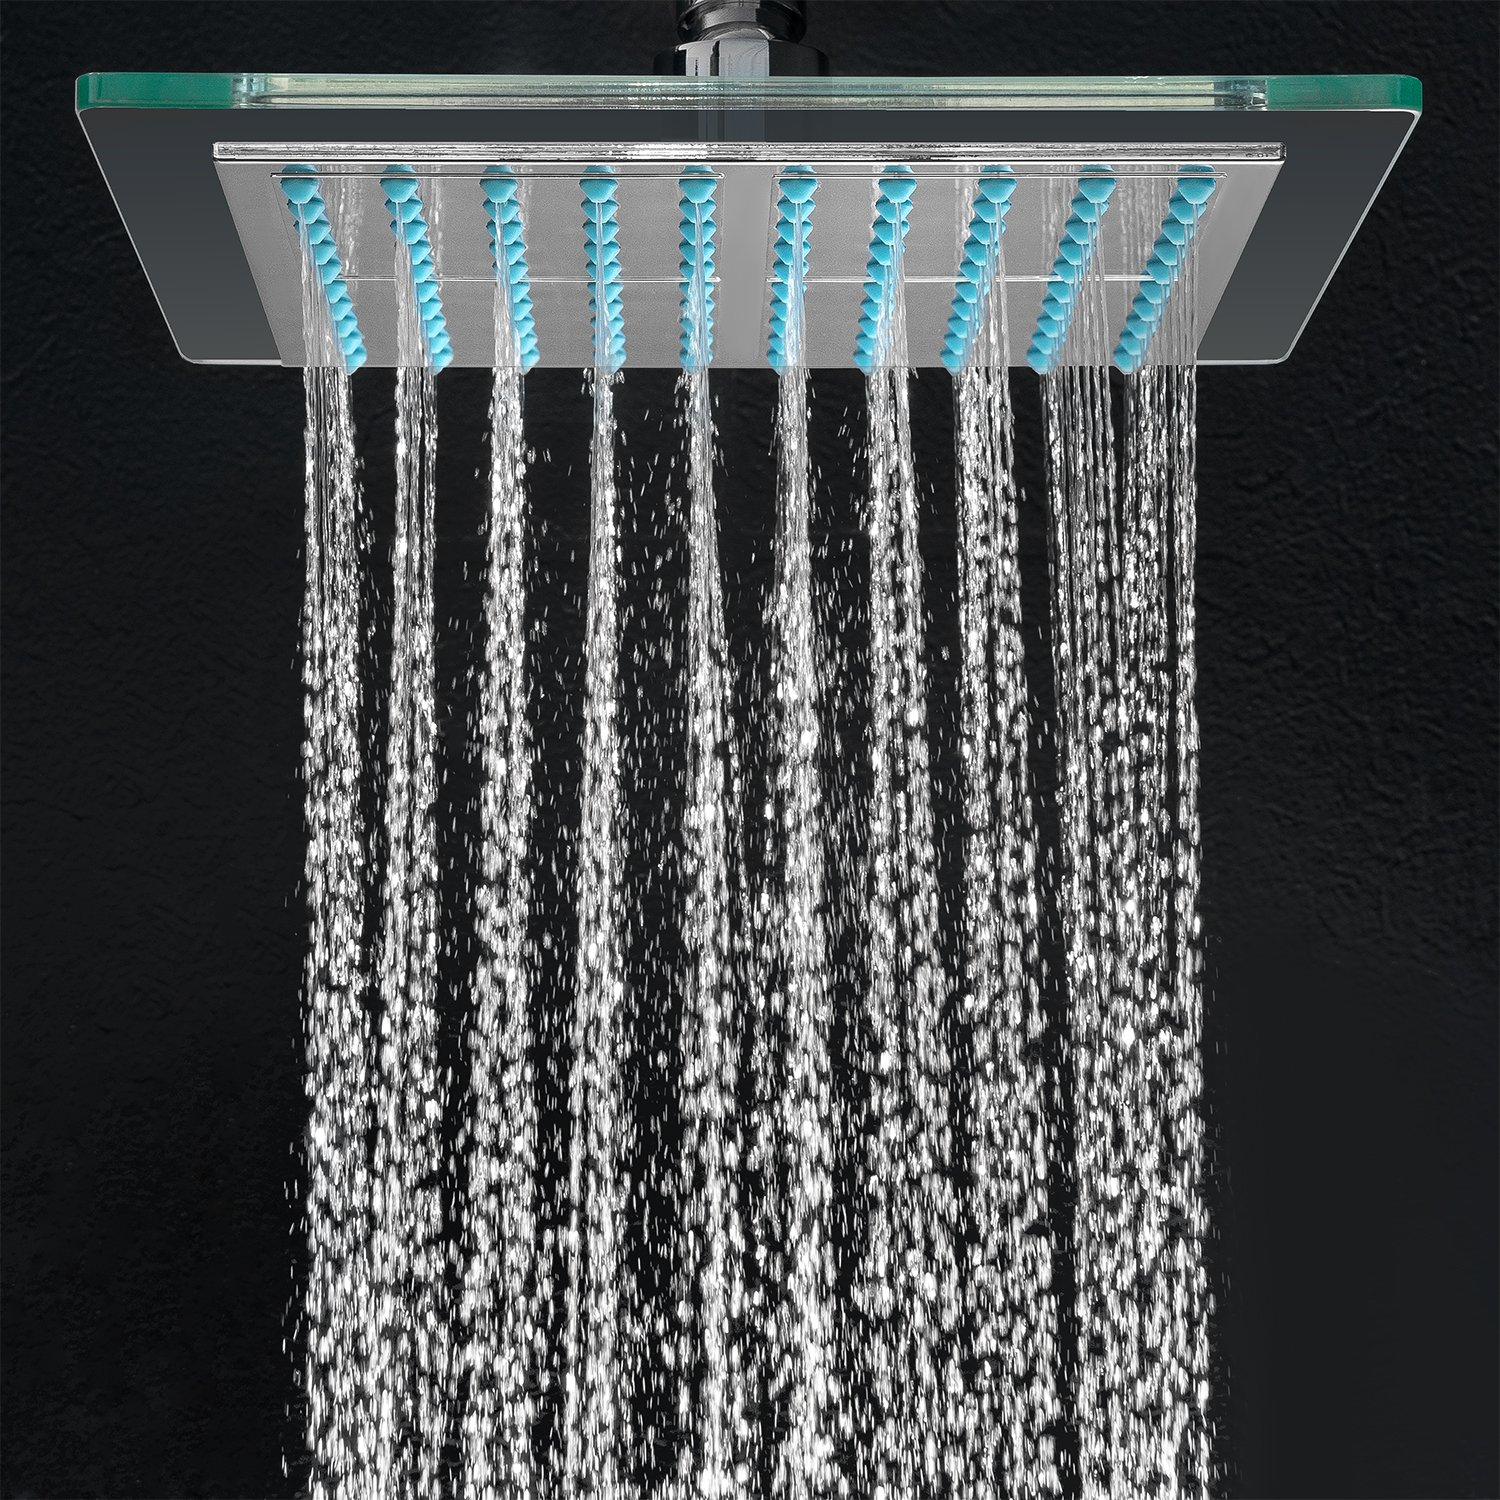 AKDY AZ6021 Bathroom Chrome Shower Head 8inch Fixed